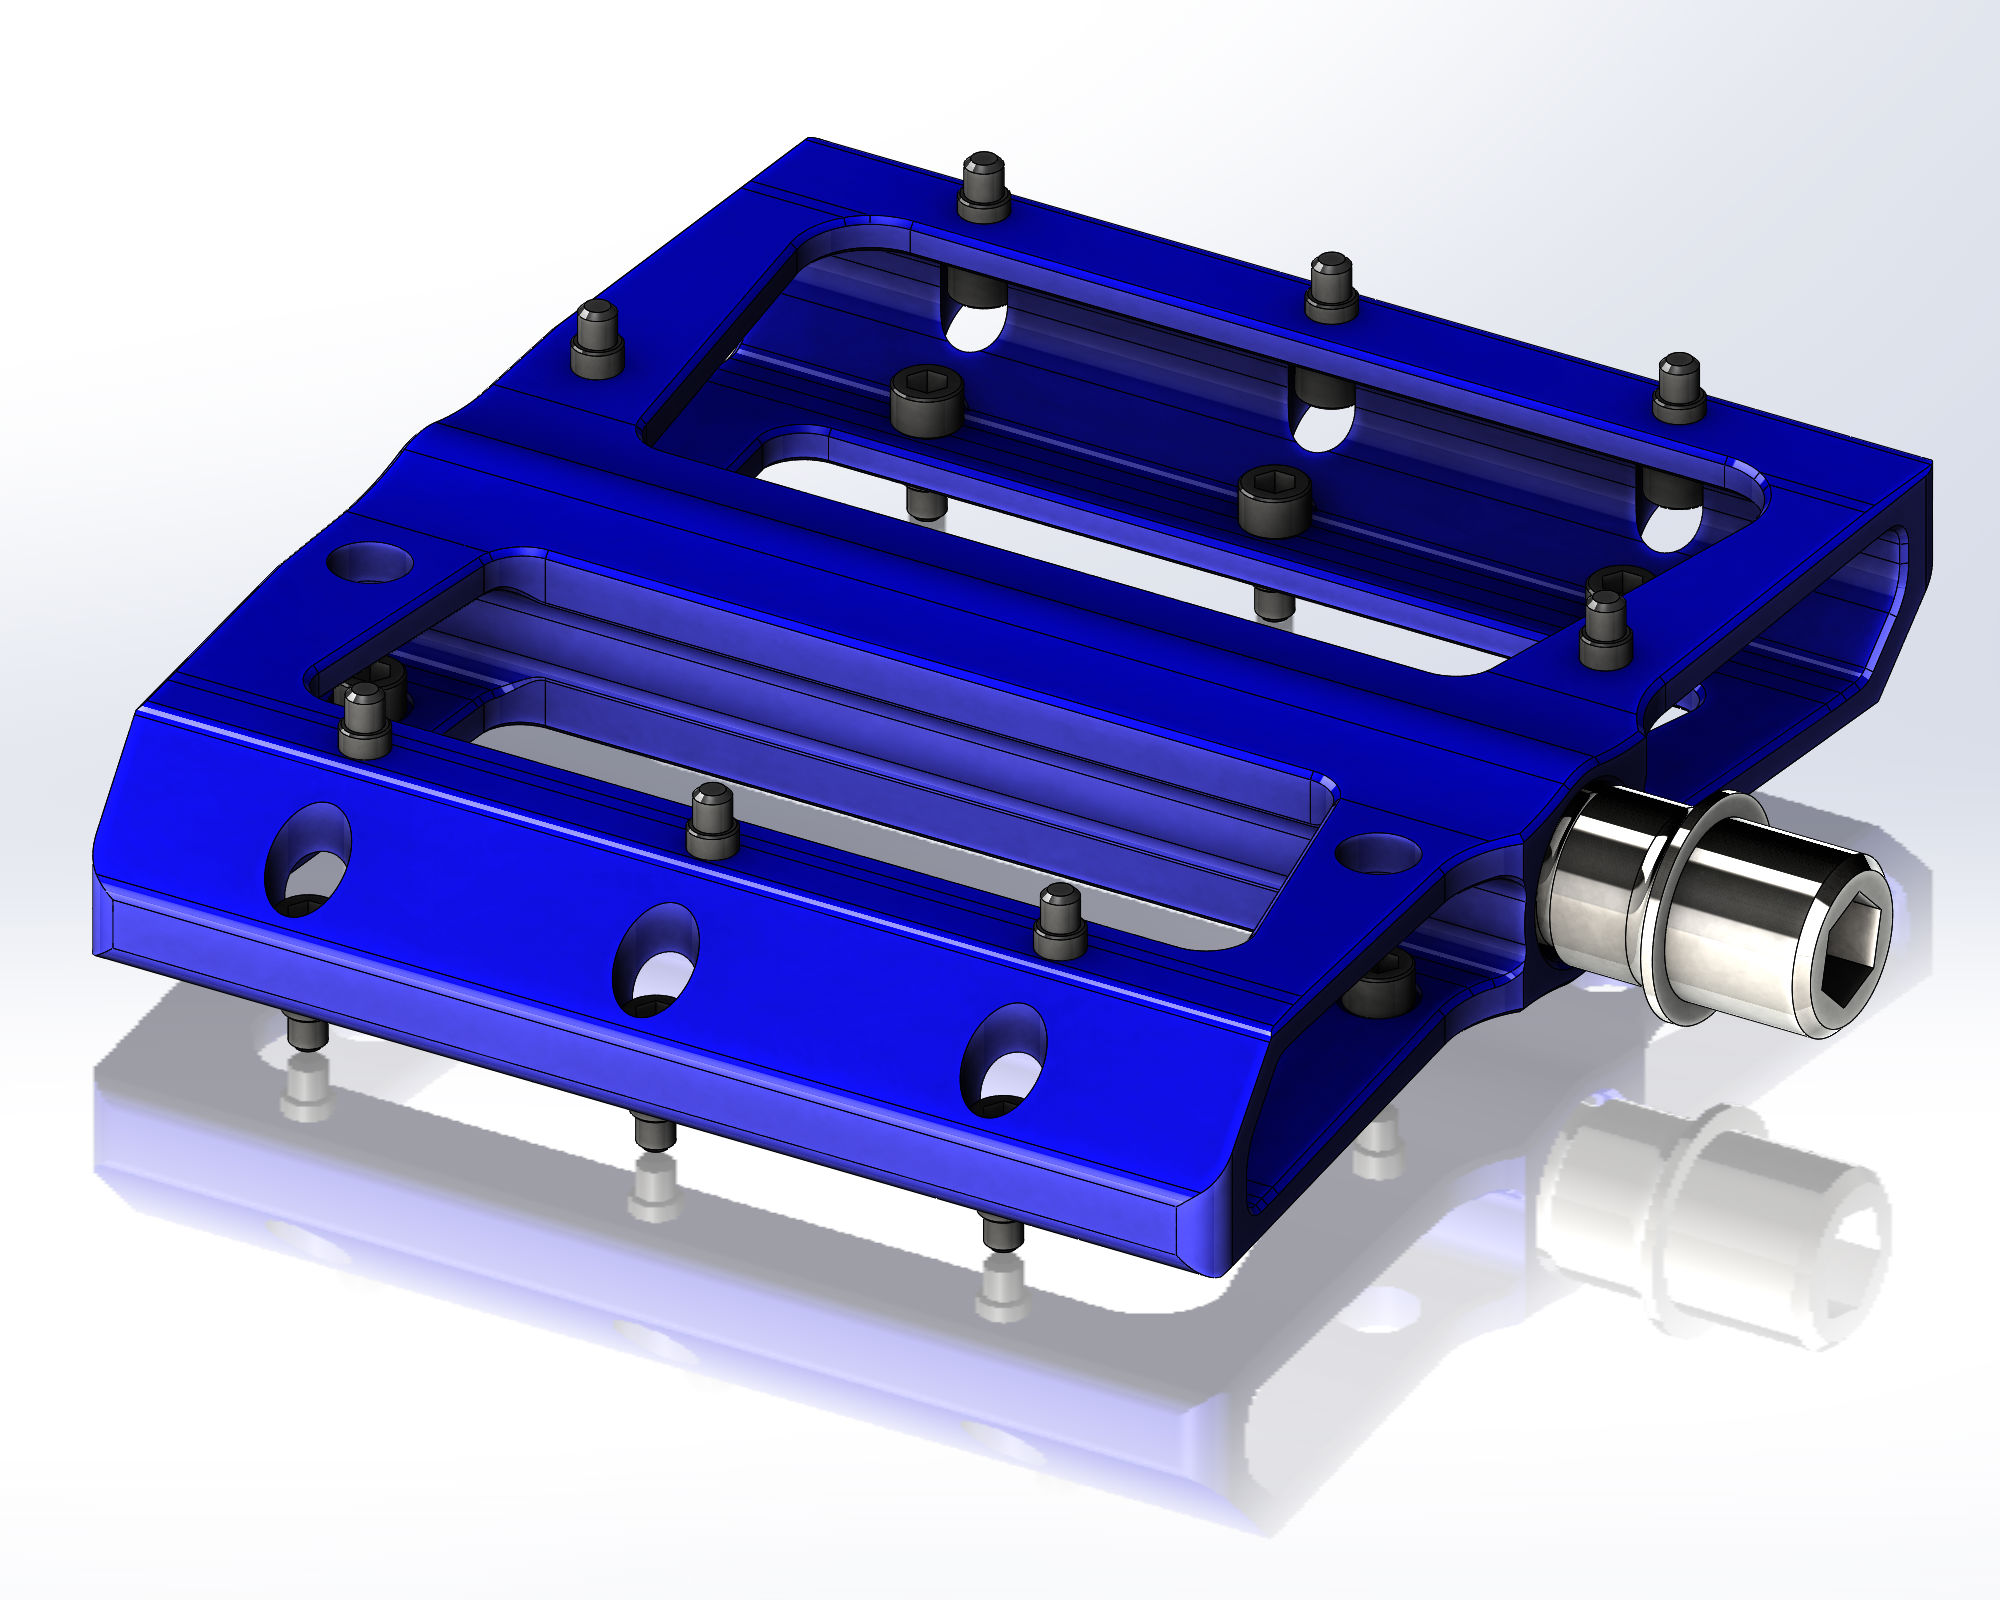 Flat Pedals - Manufactured to custom designs with supply of high end forged axle systems in steel or titanium available. Custom seals provided with high tech IGUS bushings.MOQ - 250 pairs, standard extrusionMOQ - 1000 pairs, custom extrusionPrice: Asia competitive